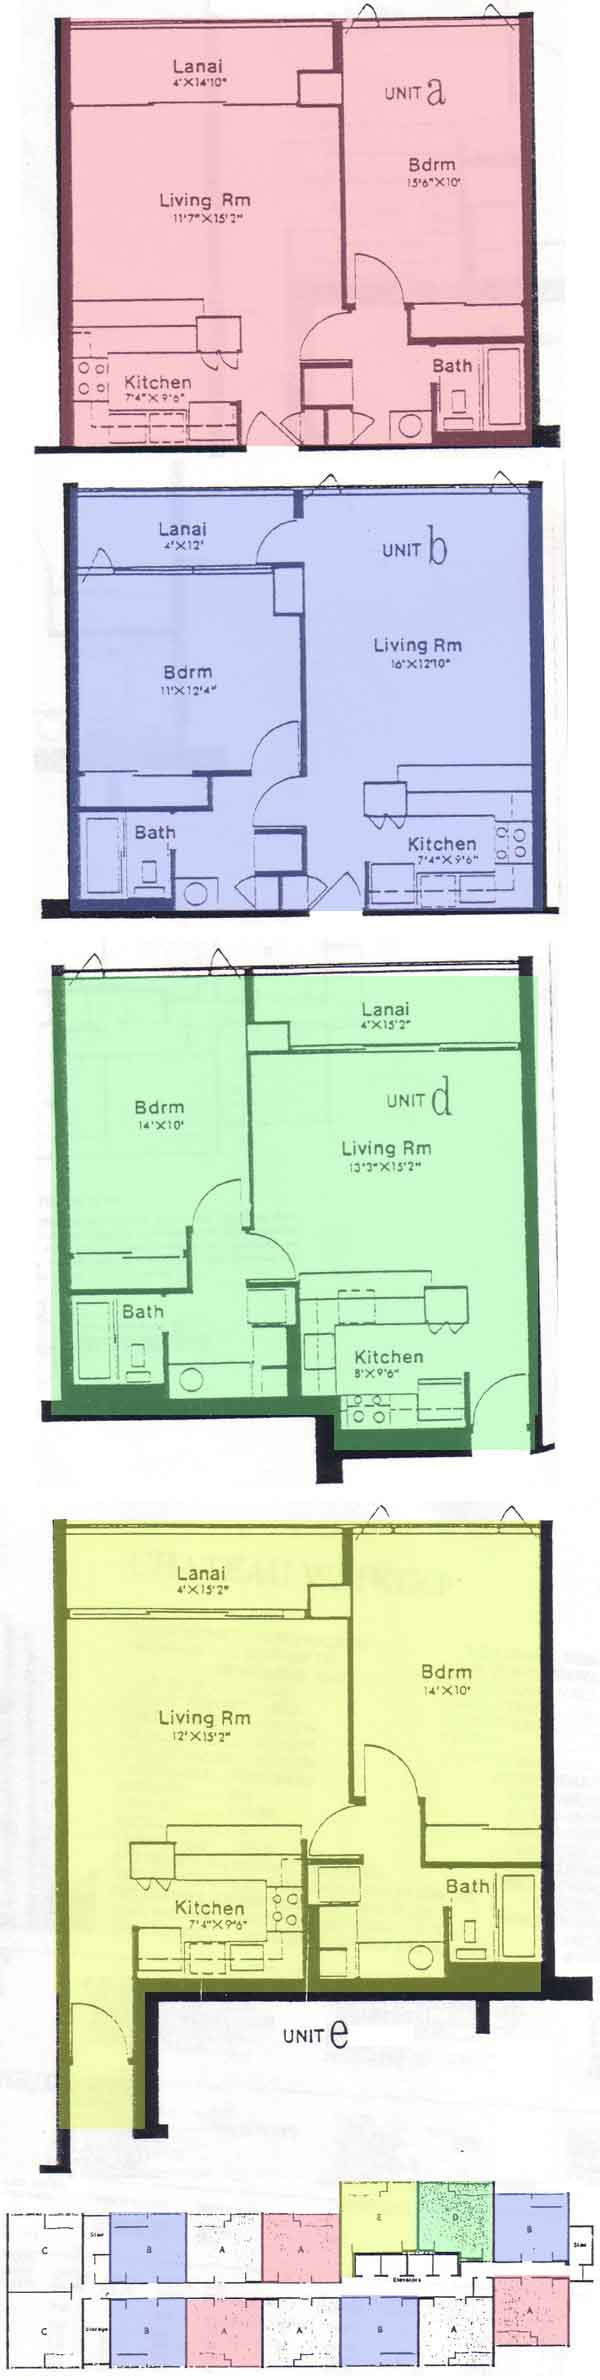 Chateau waikiki honolulu hawaii condo by for 4 unit condo plans